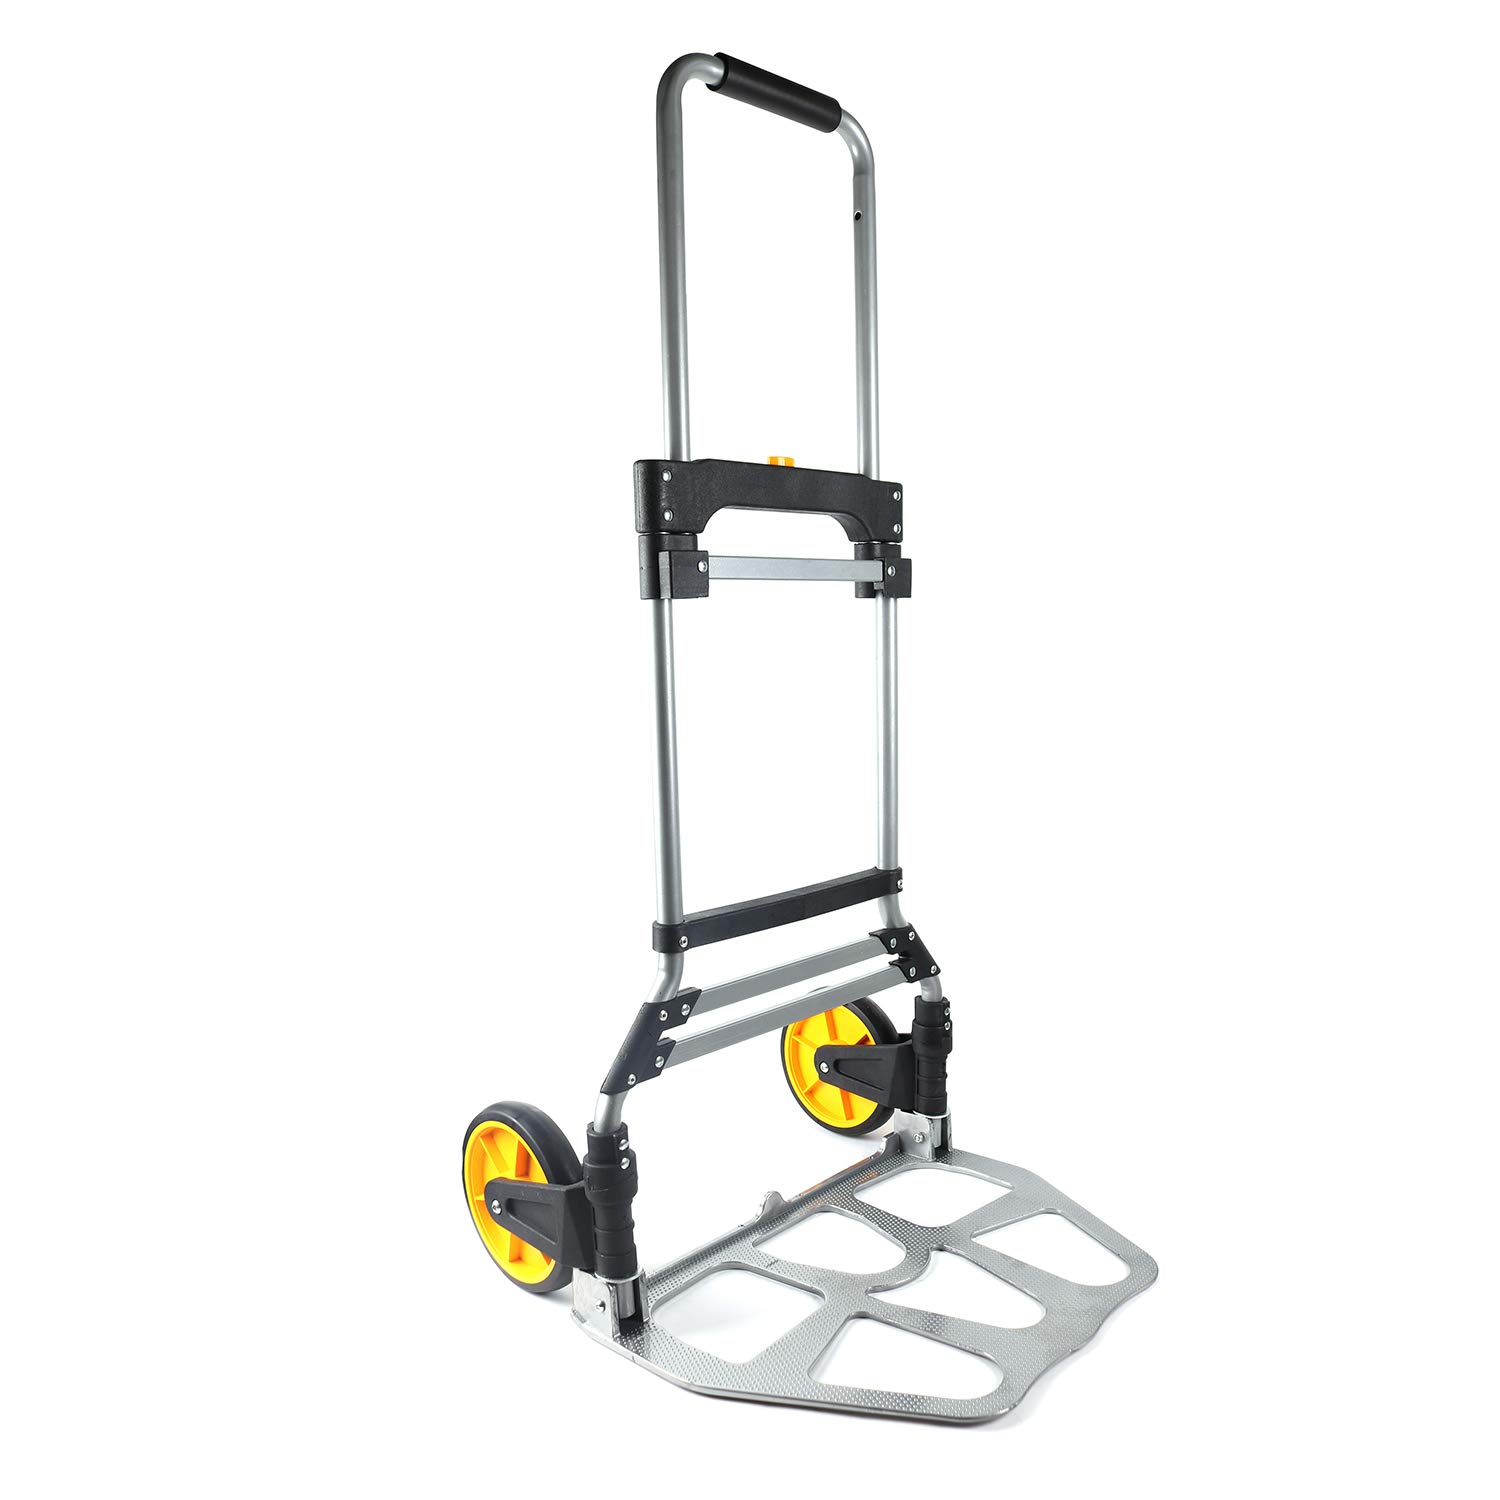 Berry Ave Foldable Hand Cart - Easy Folding Hand Truck - Aluminum Alloy Folding Dolly with Ergonomic Grips - 2 Wheeled Easy Push Moving Dolly - Easily Holds Up To 265 Lbs. - Silver